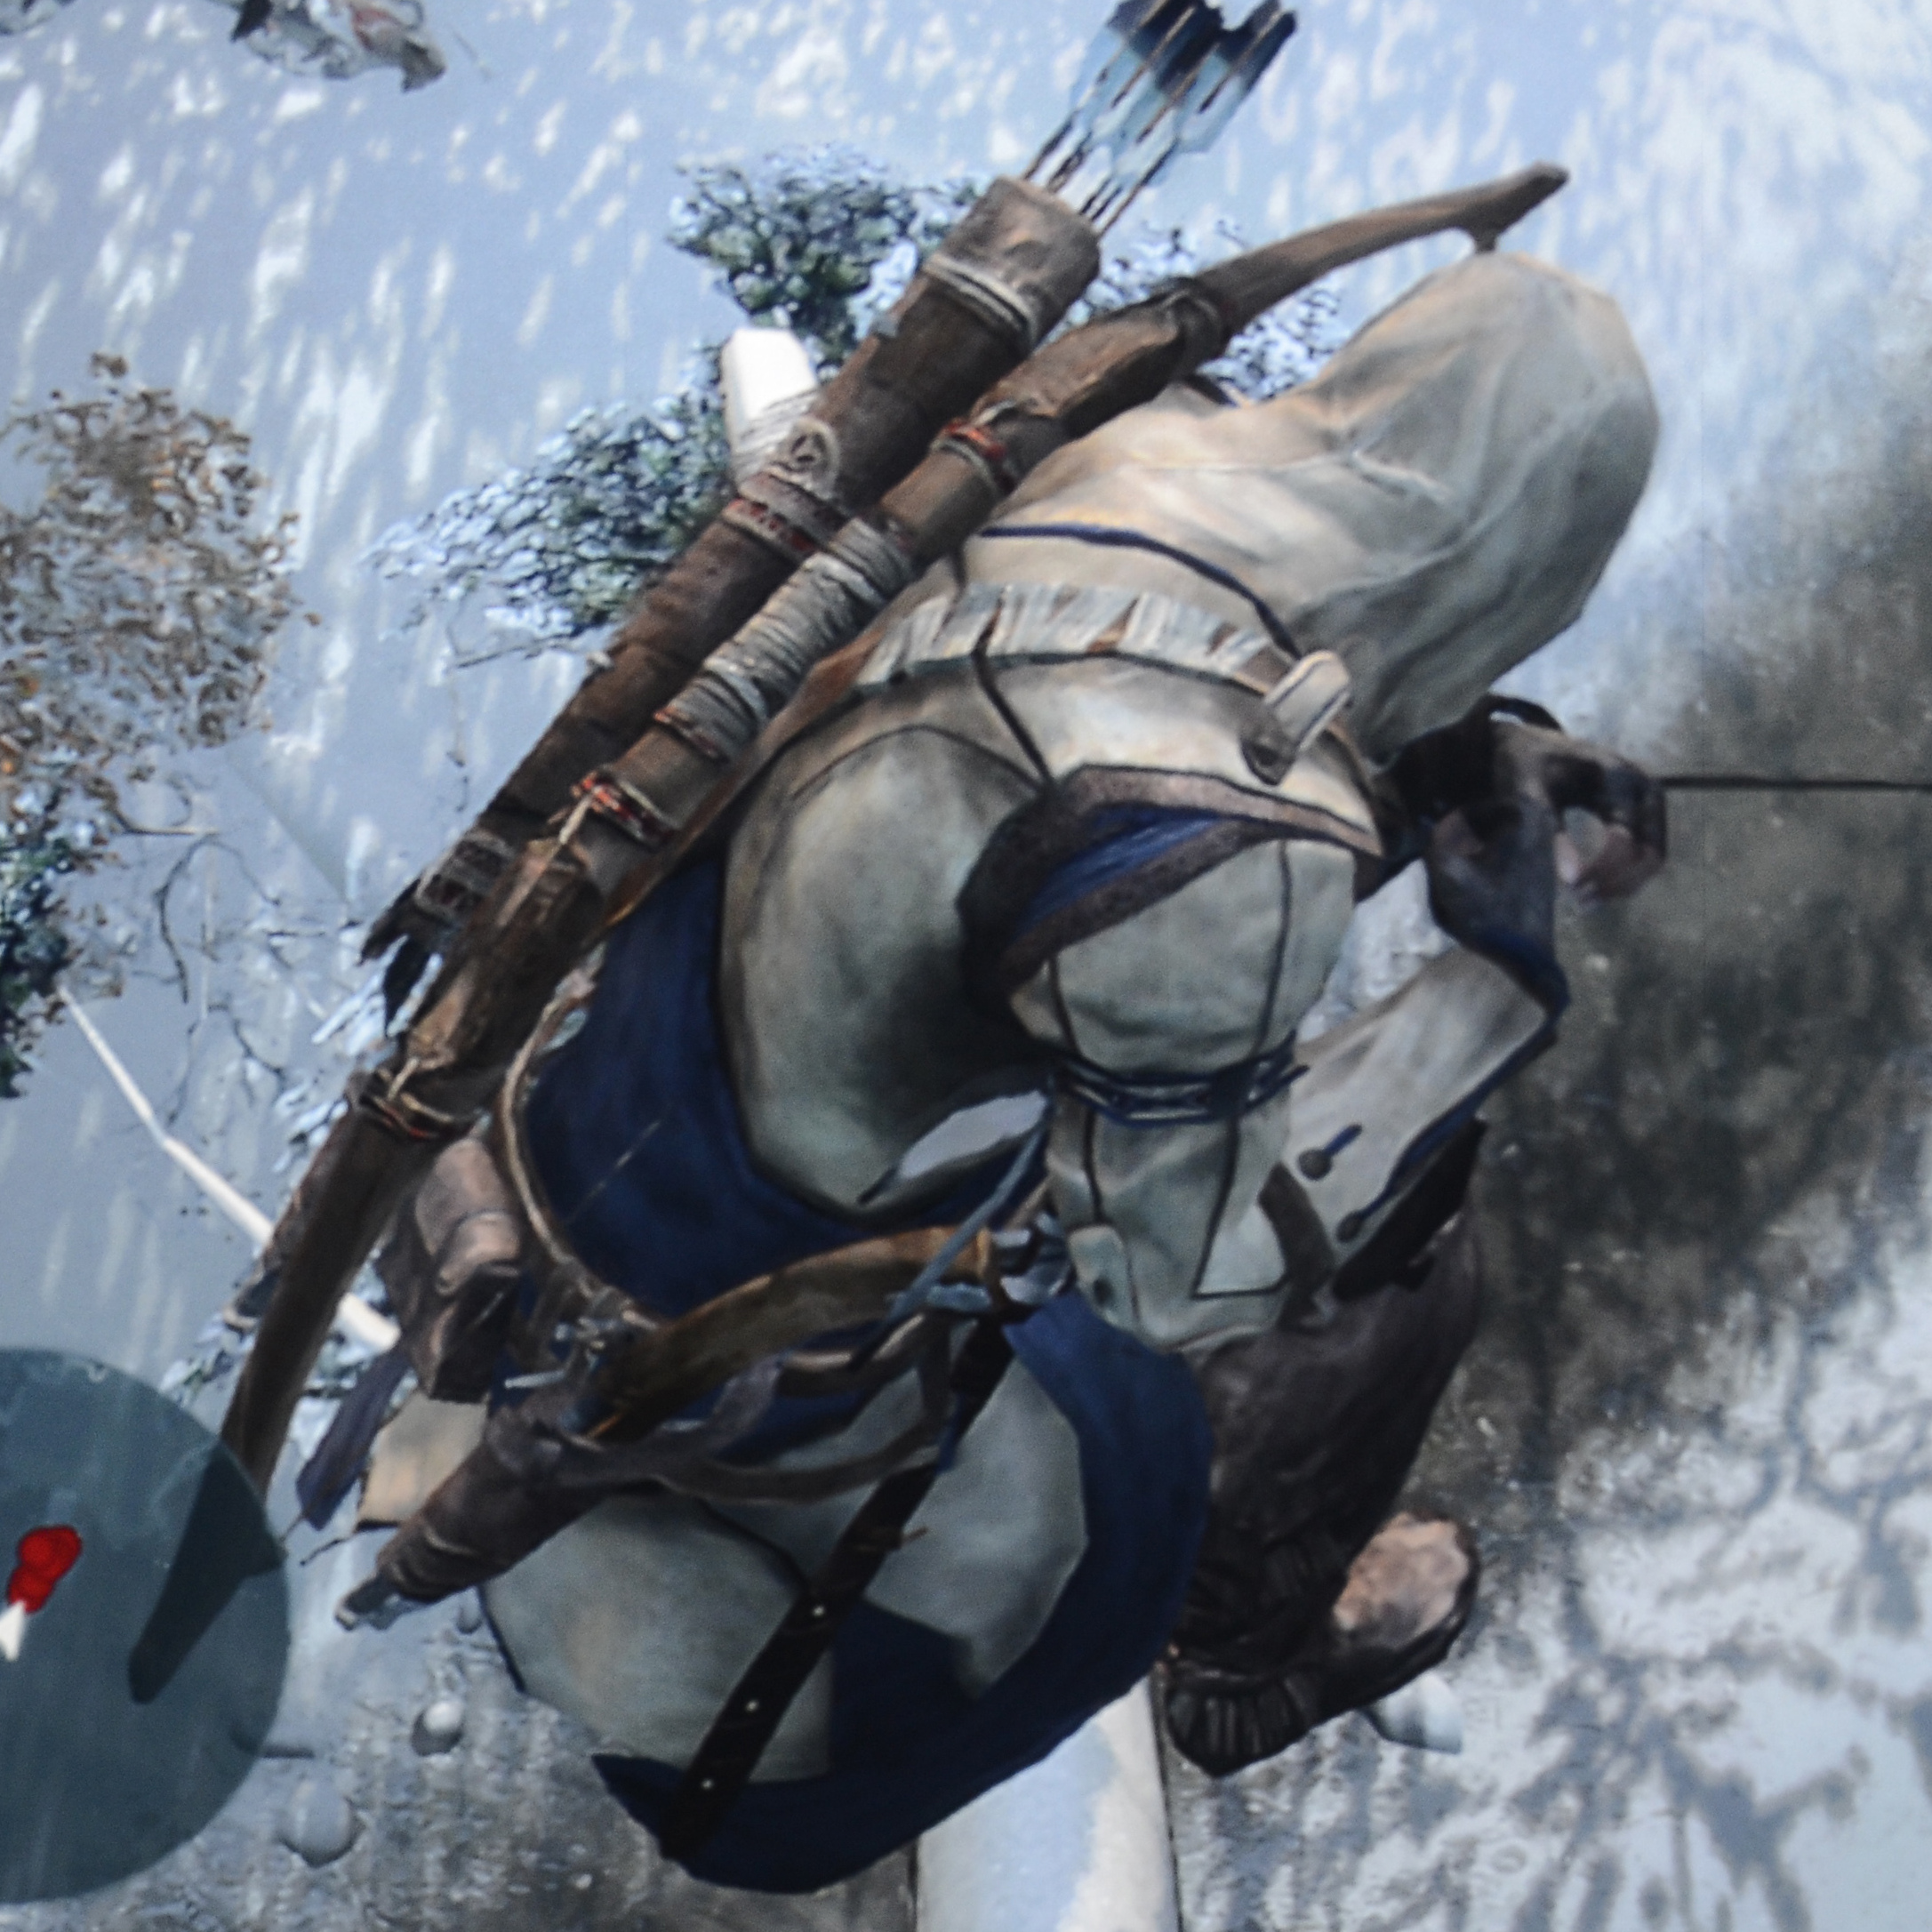 A shot from Assassin's Creed 3.